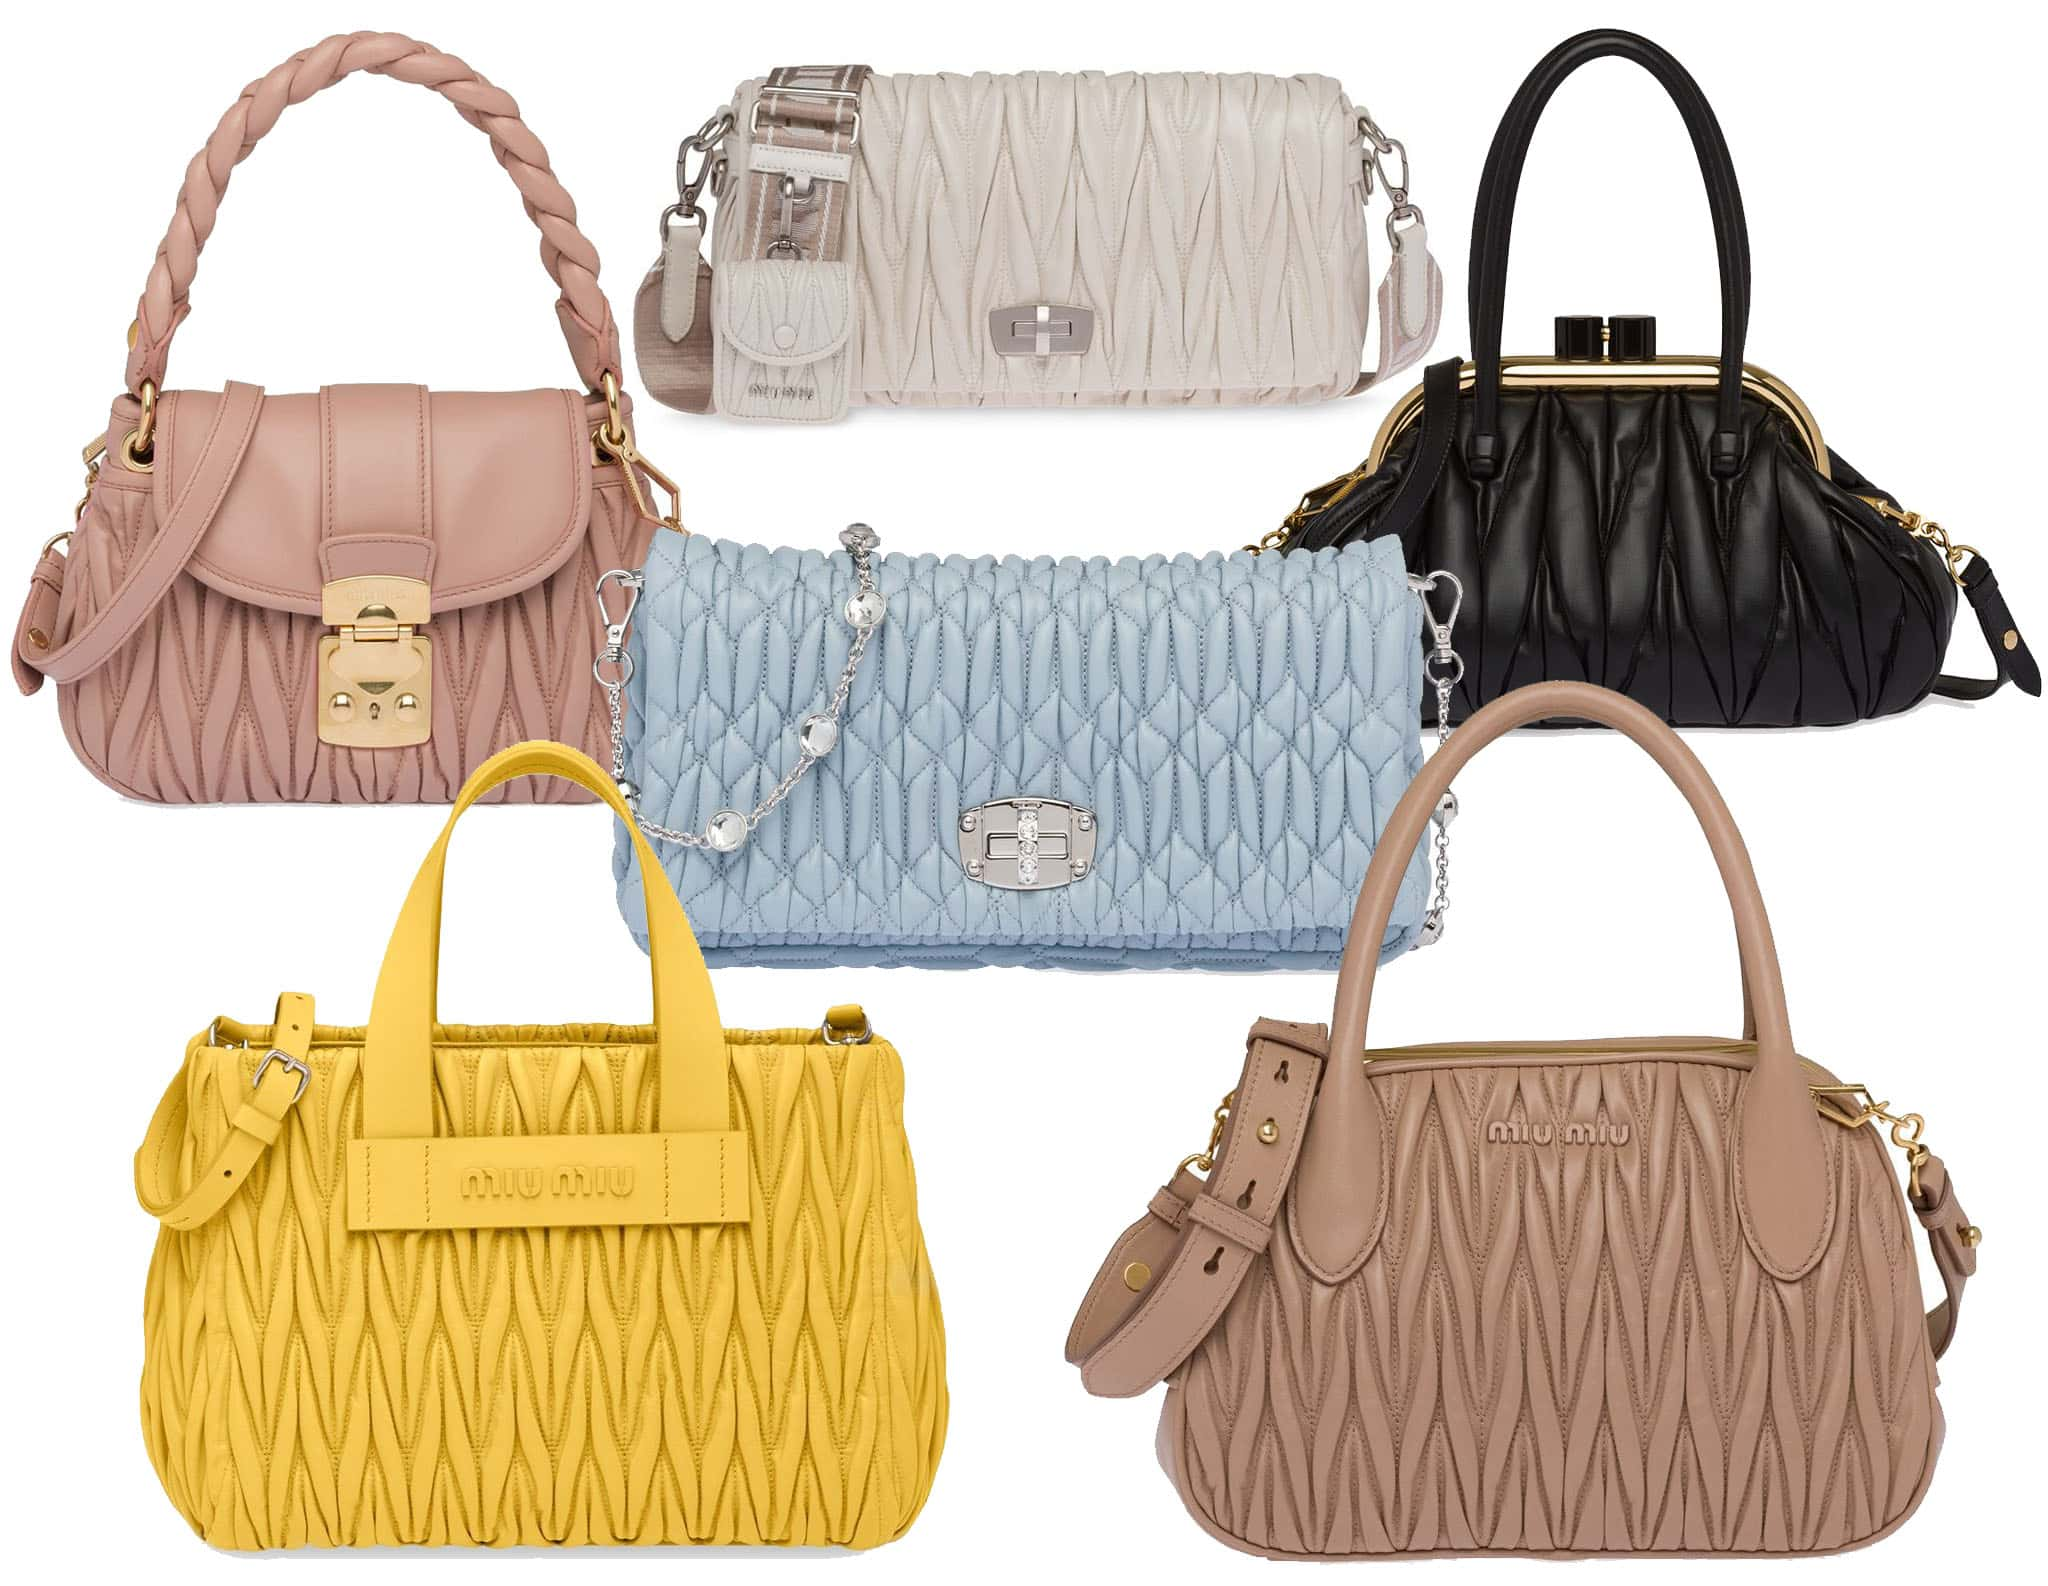 The quilted matelassé is one of the most iconic and popular bag designs from Miu Miu